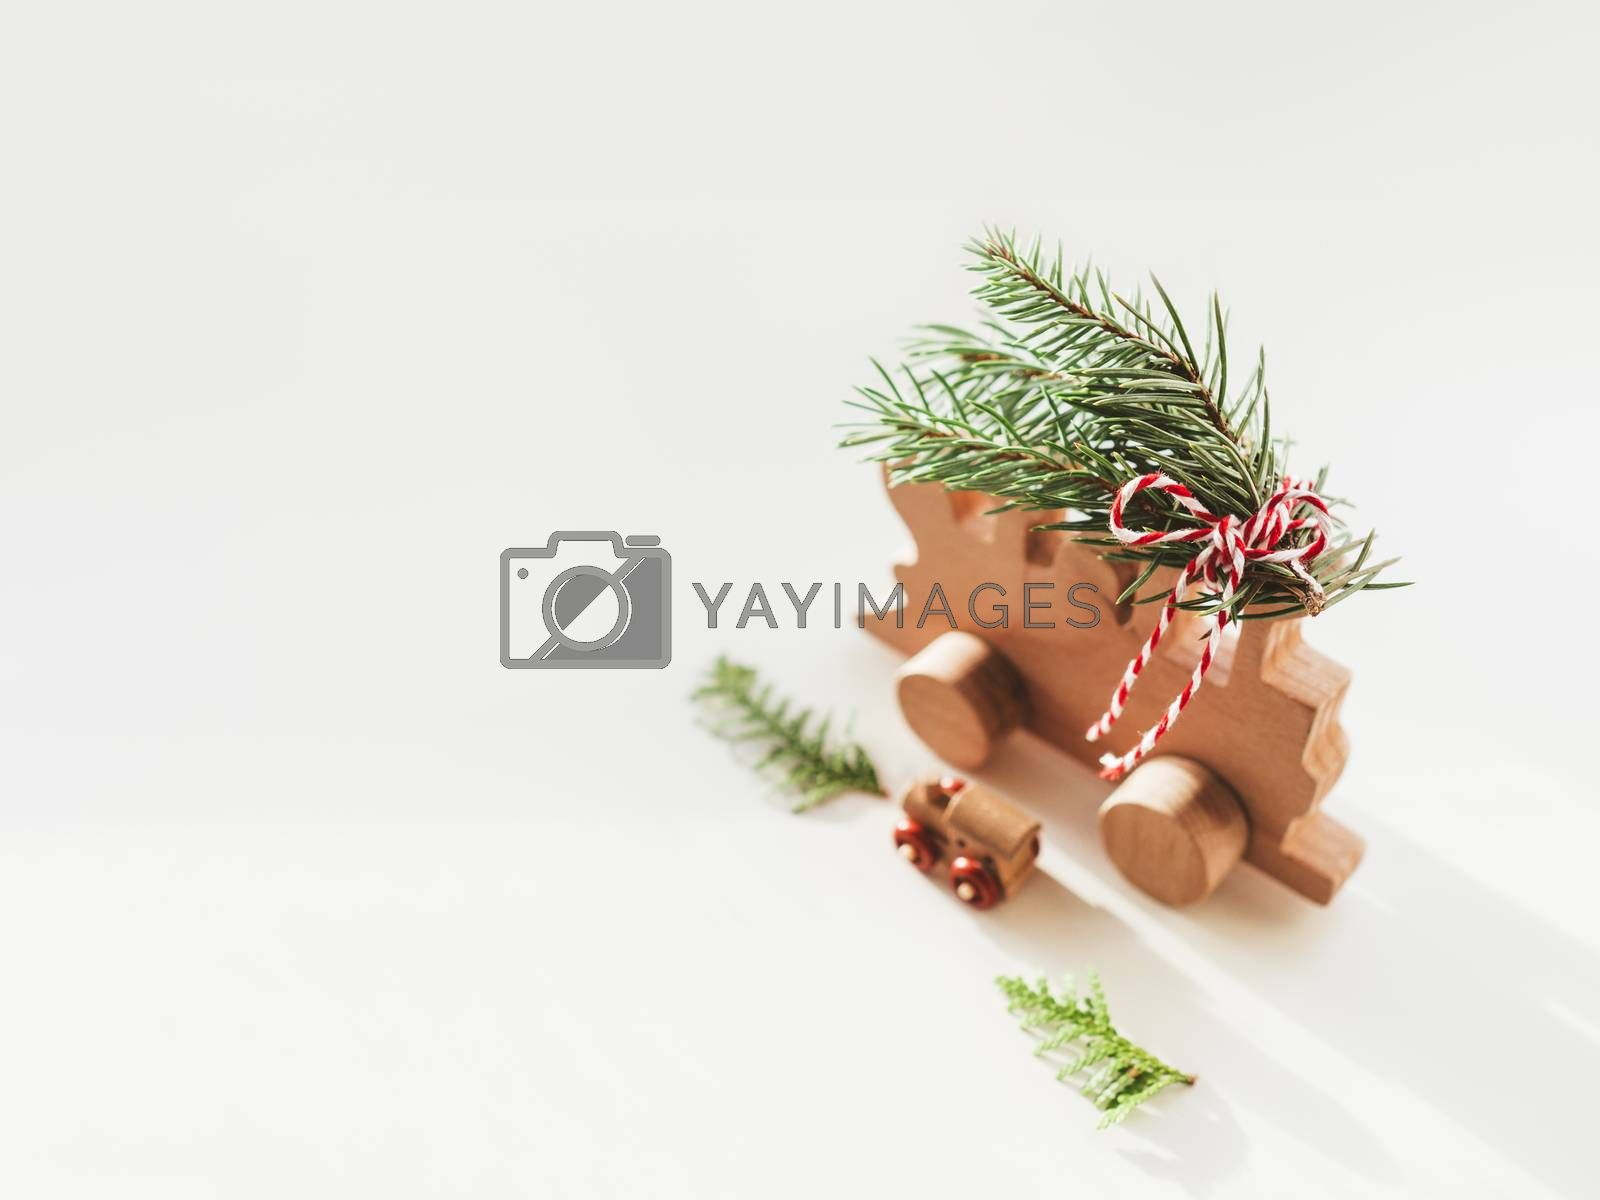 Two wooden trains with tied fir tree coniferous twigs. Dad and baby. Cute symbol of Christmas tree brought home for New Year celebration. Winter holiday spirit. Copy space.